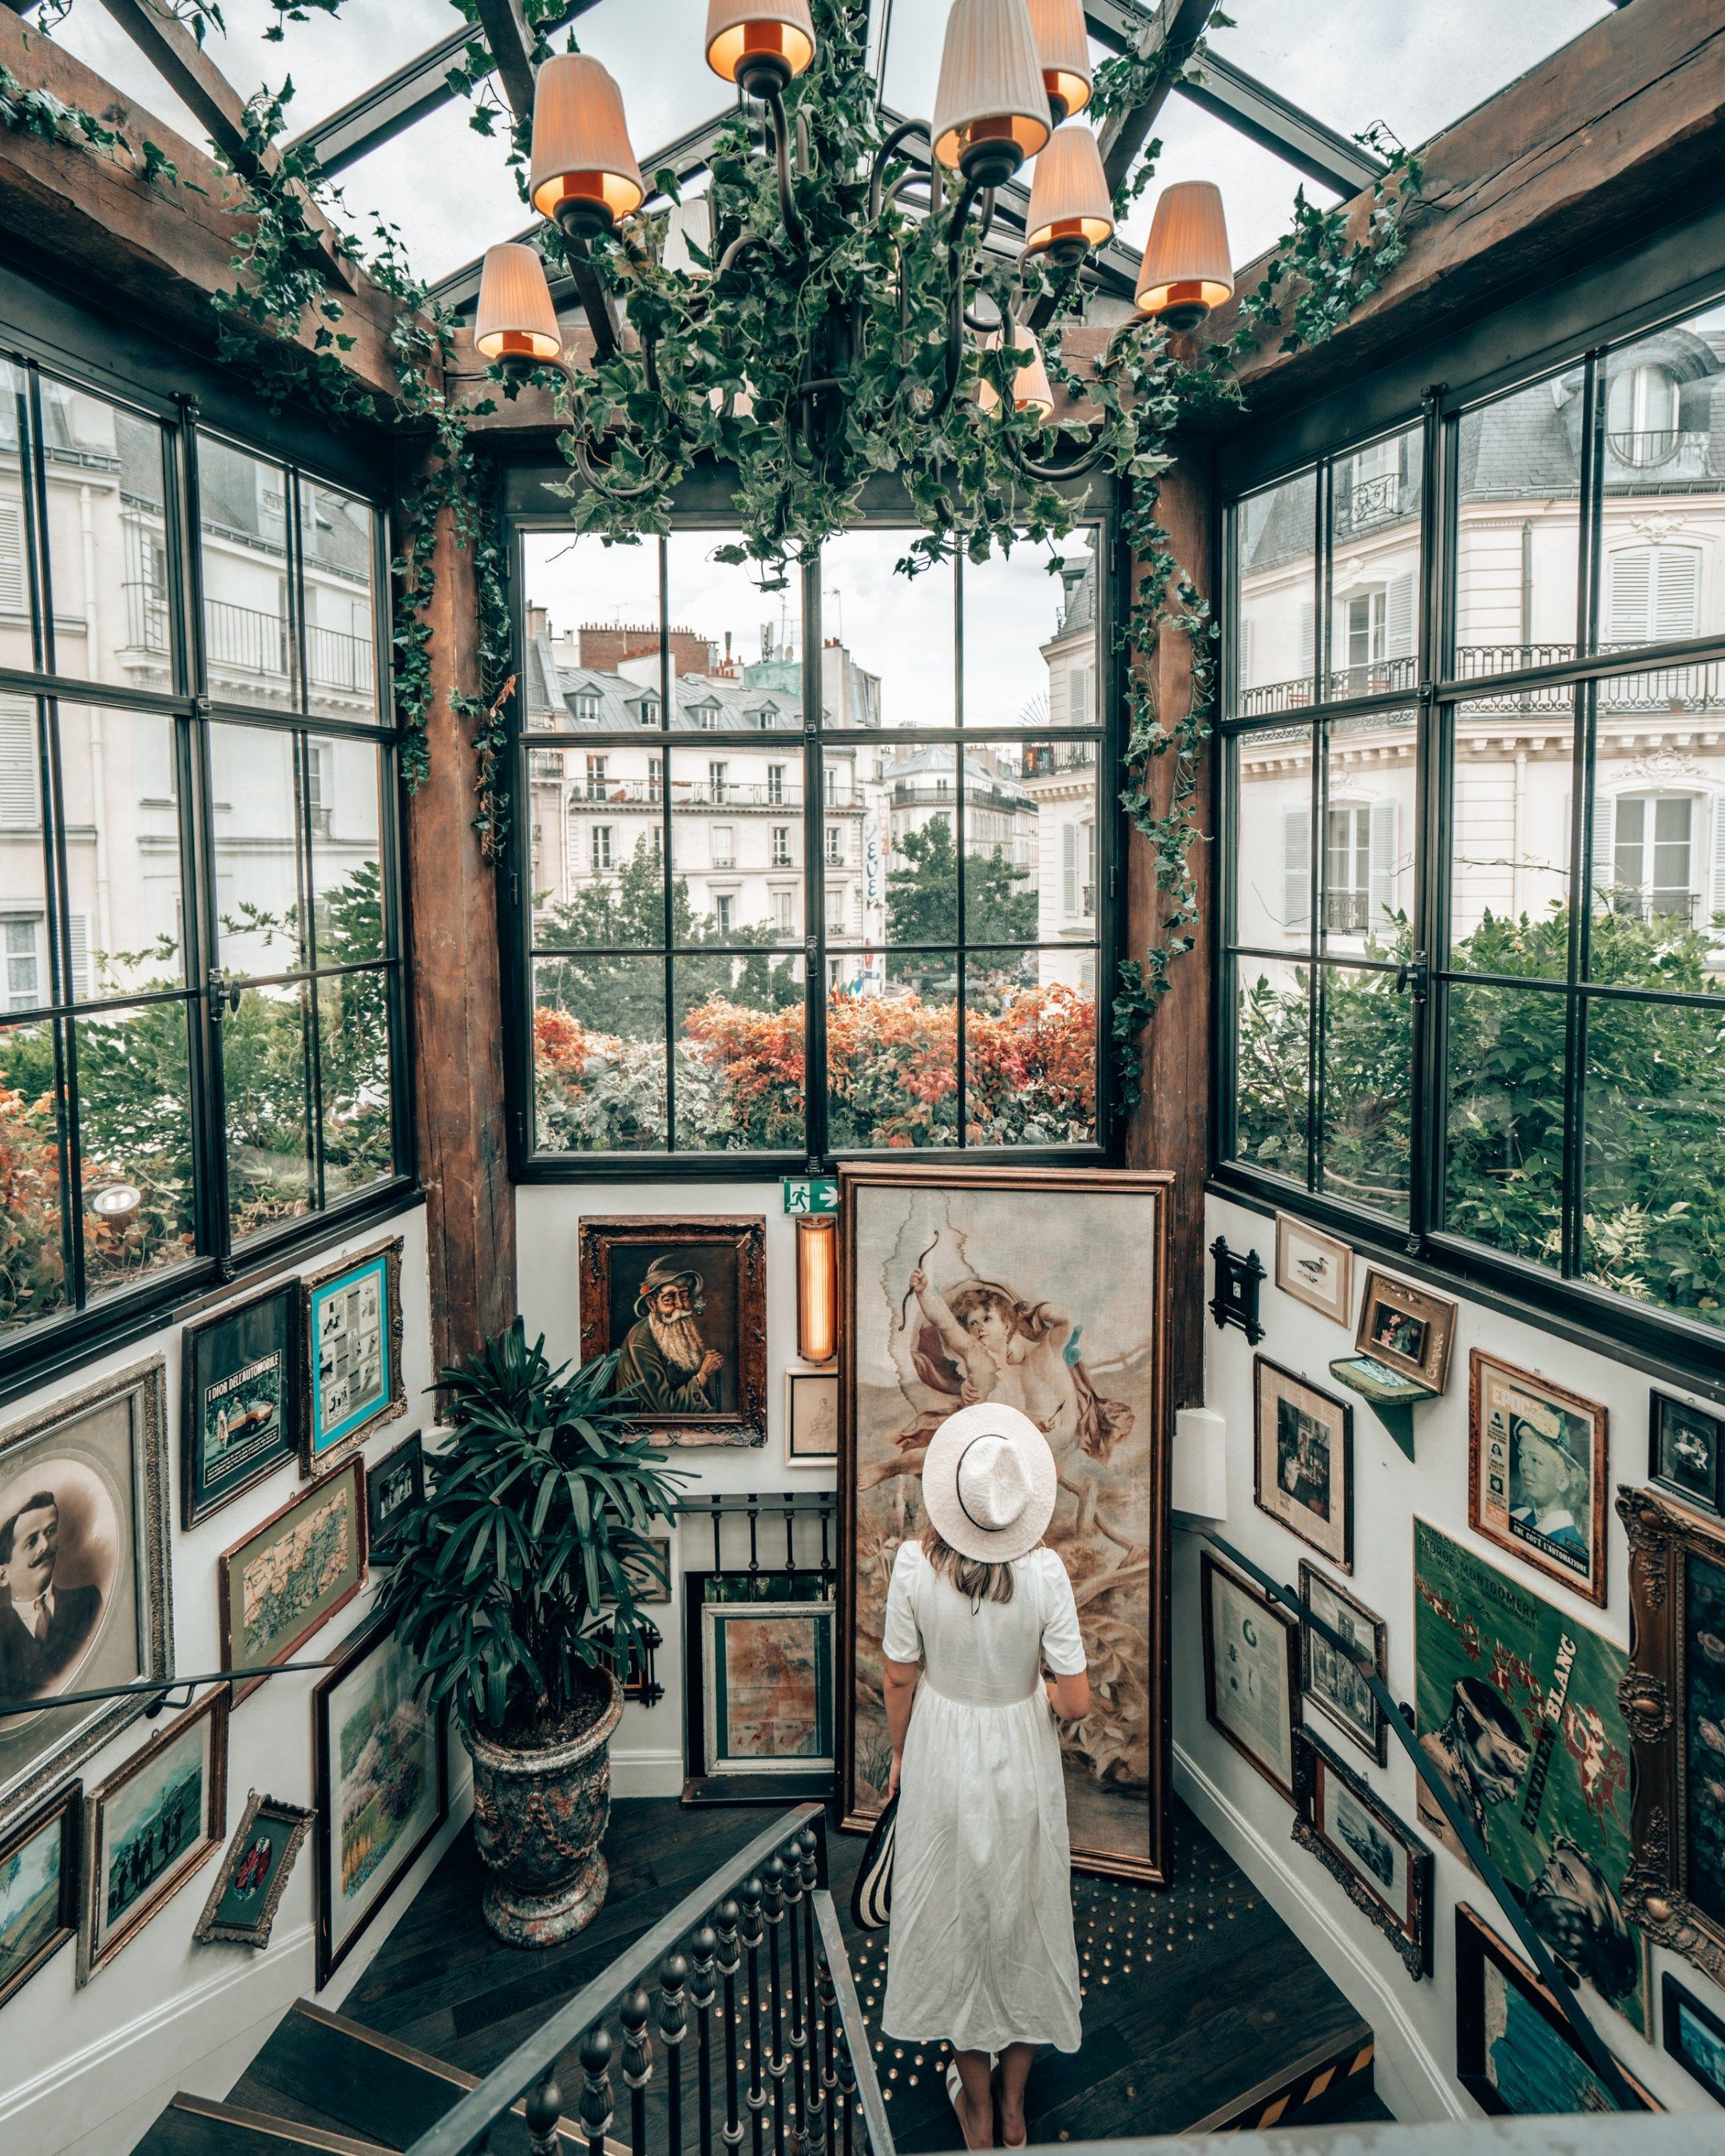 My Home In Paris an instagrammable guide to paris - paris, the city of light